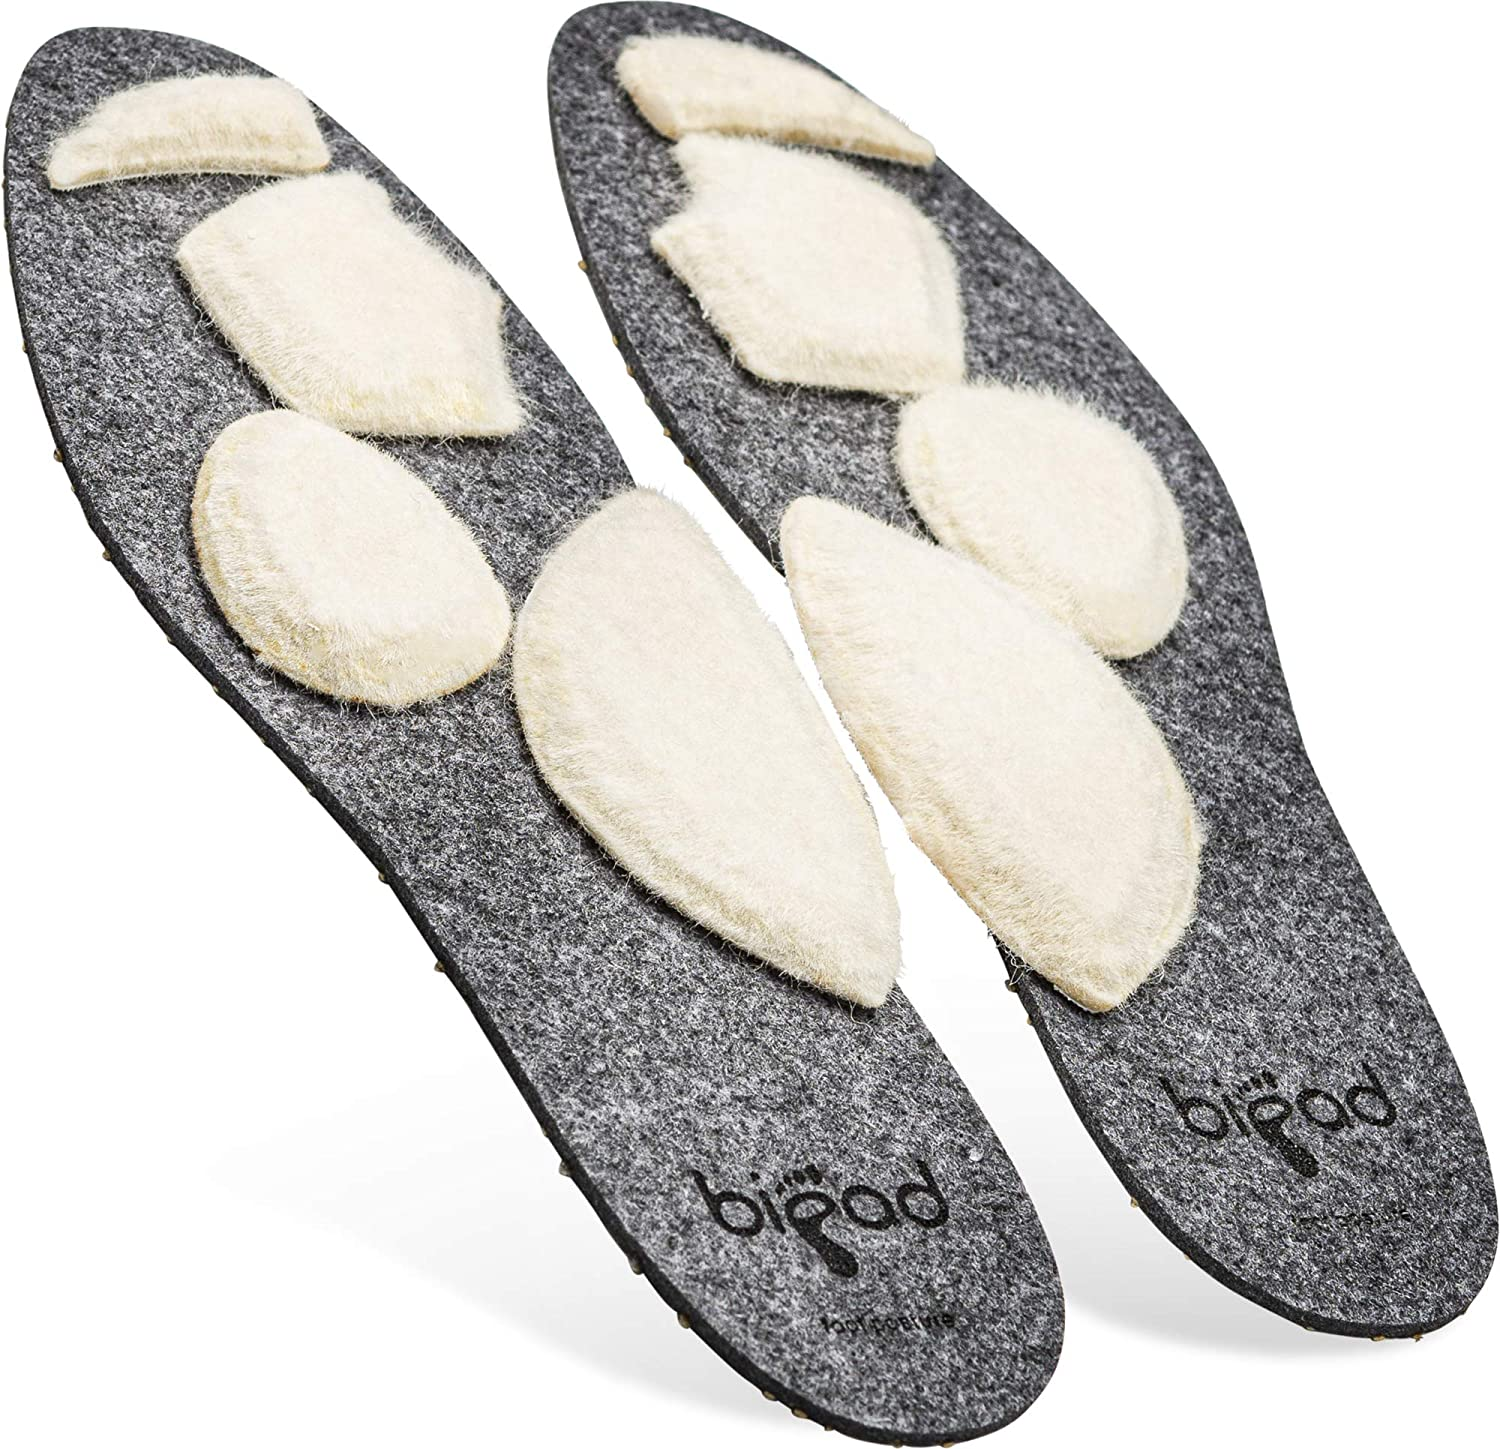 Bipad Plantar Fasciitis Orthotic Insoles for Men and Women – Shoe Inserts with Removable and Customizable Pads for Arch Support, Bones, Ligaments, and Tendons – Unisex Athletic Cushion Inserts, Small